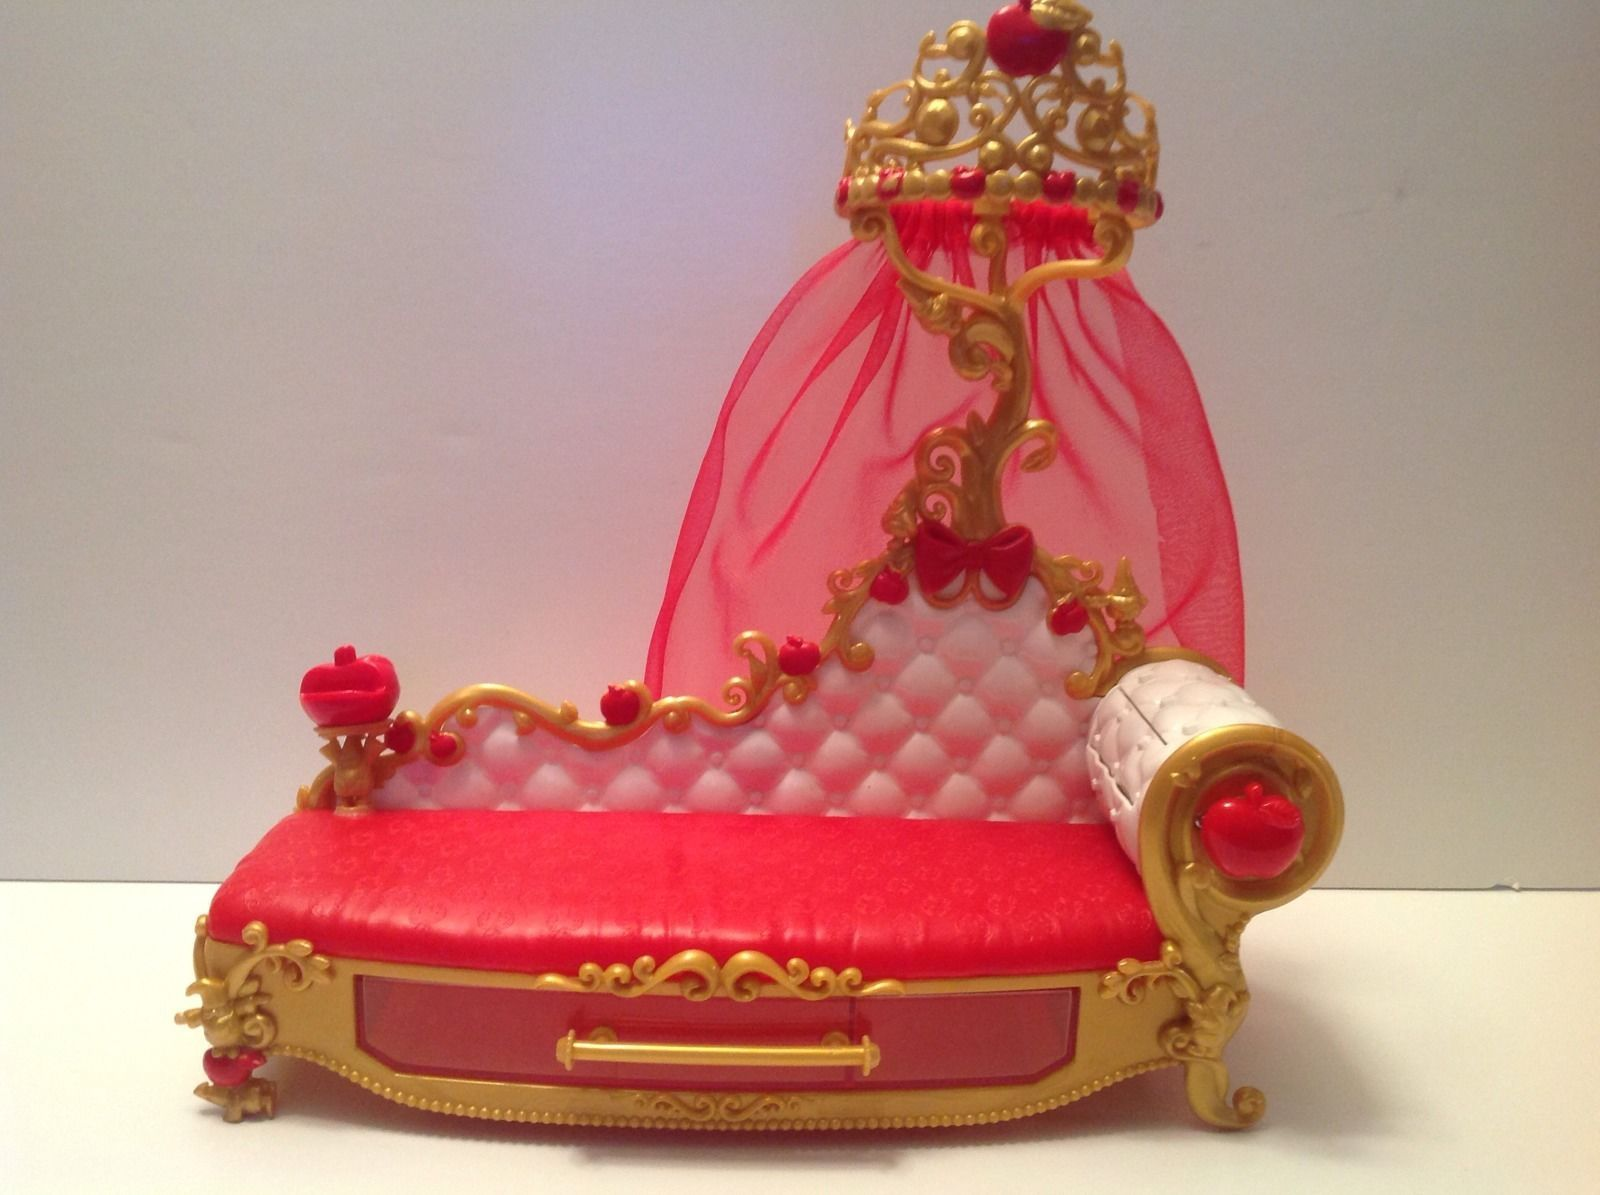 Phenomenal Ever After High Apple White Fainting Couch Used Ebay Machost Co Dining Chair Design Ideas Machostcouk